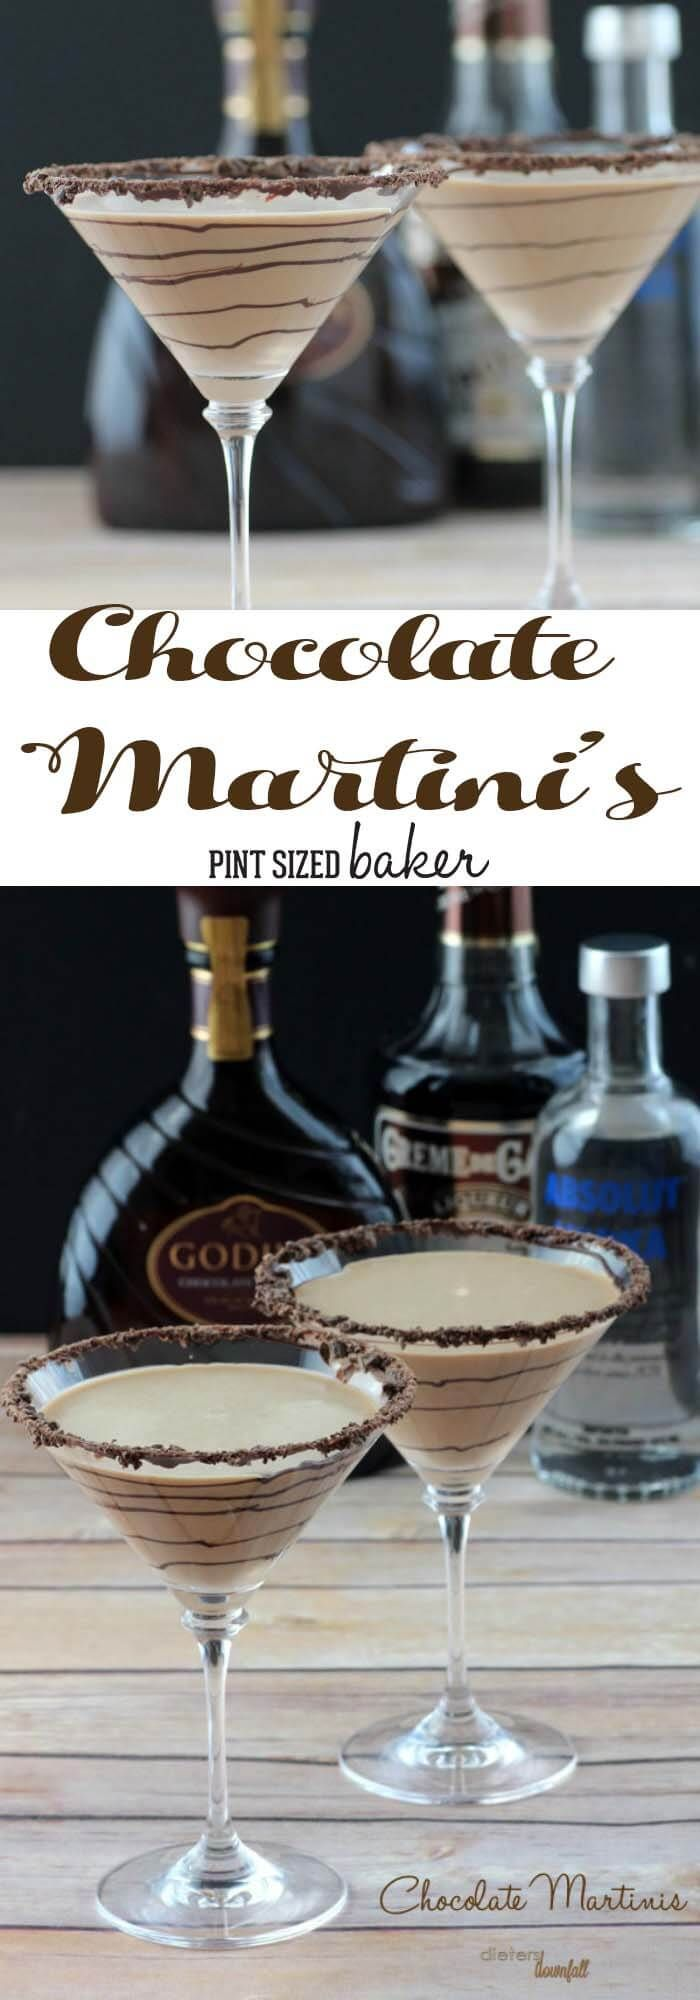 Amazing Chocolate Martini's are perfect for Girls Night In! Make a batch and enjoy with your girlfriends!